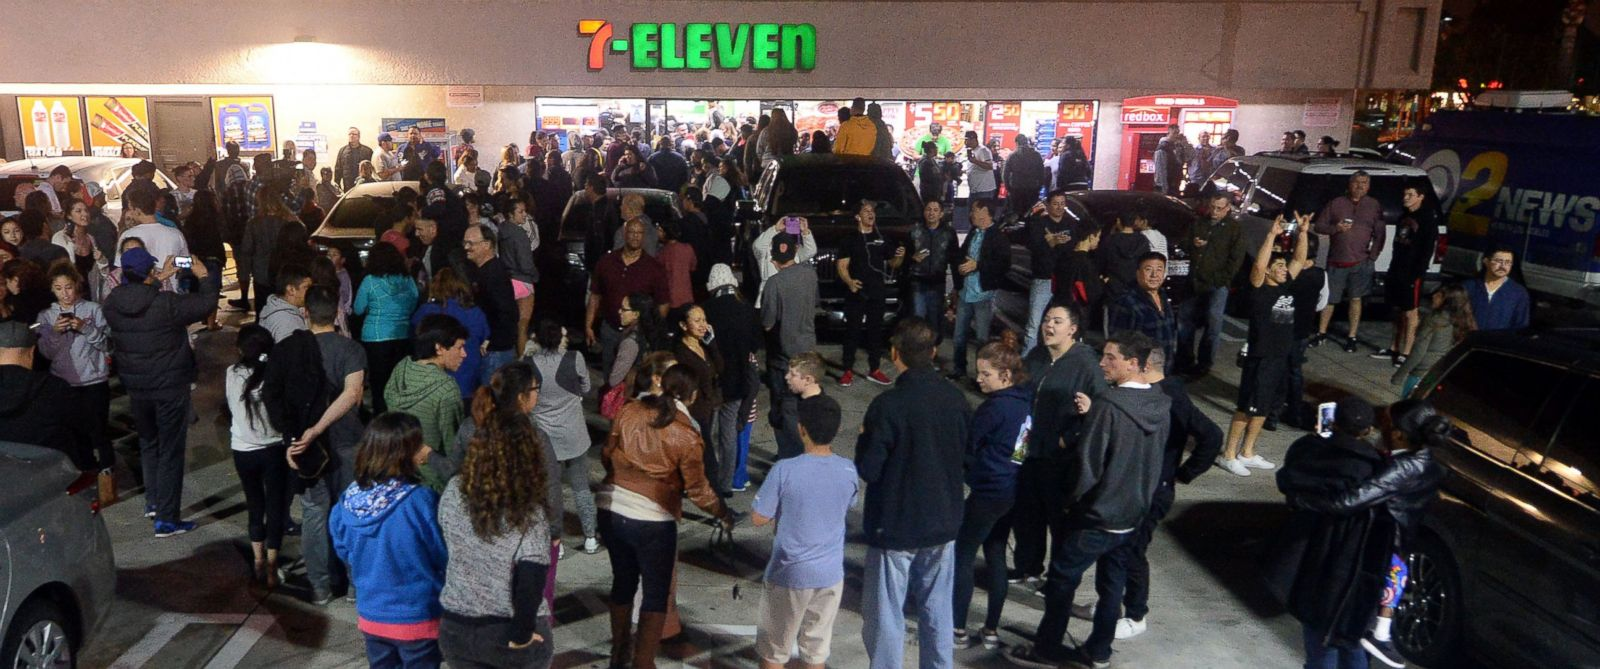 PHOTO: Hundreds gather outside the 7-Eleven, after it was announced the winning Powerball ticket was sold at the store, Jan. 13, 2016 in Chino Hills, Calif.